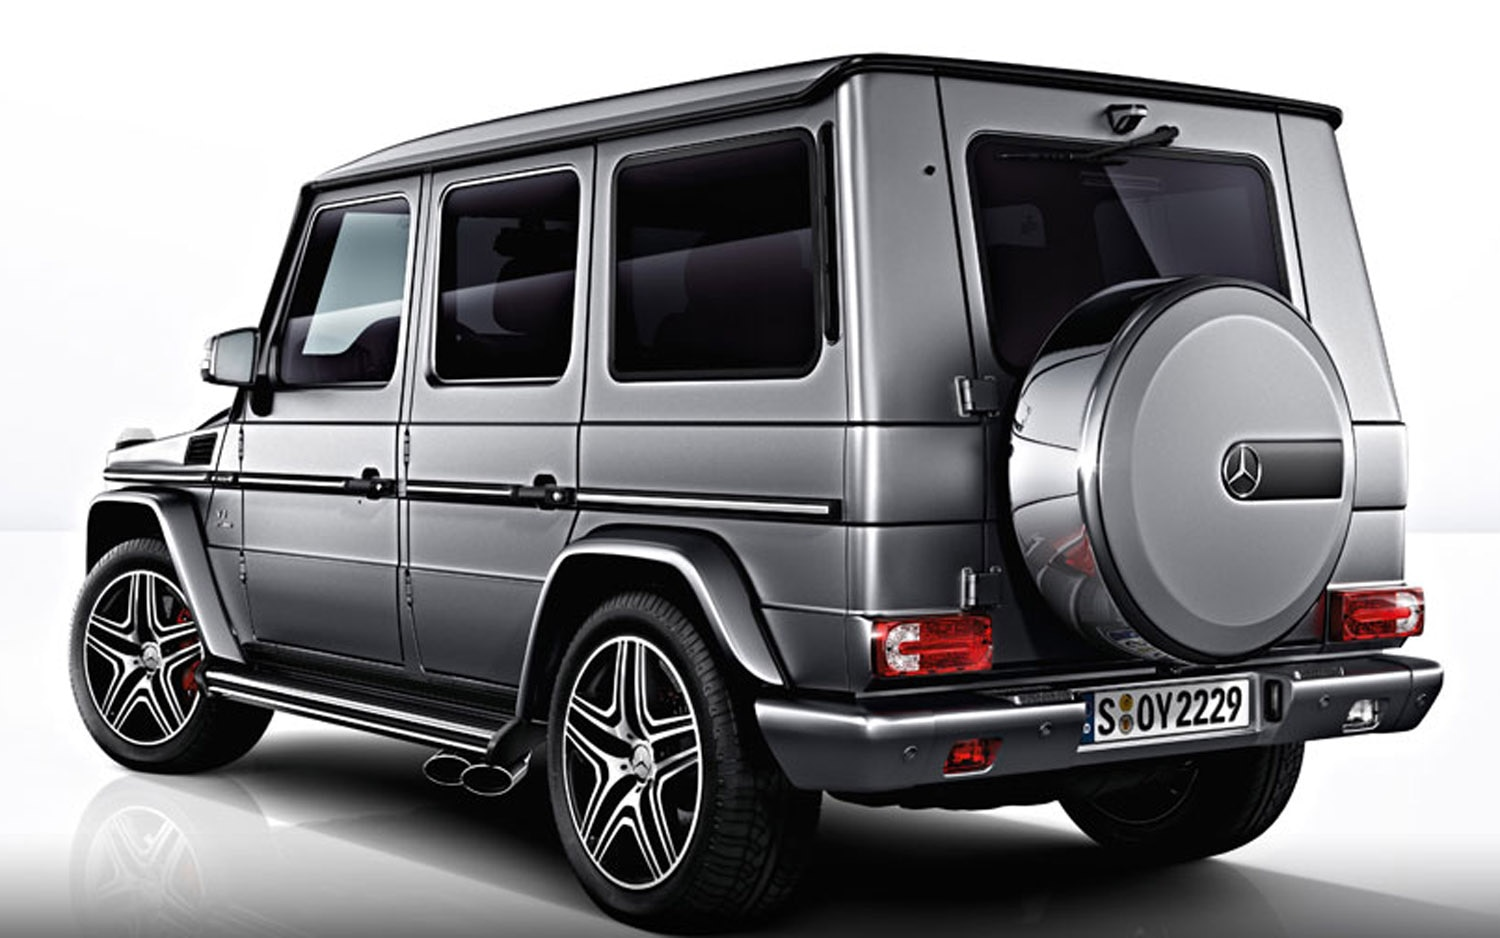 faster box mercedes benz releases photos of 2013 g63 amg. Black Bedroom Furniture Sets. Home Design Ideas